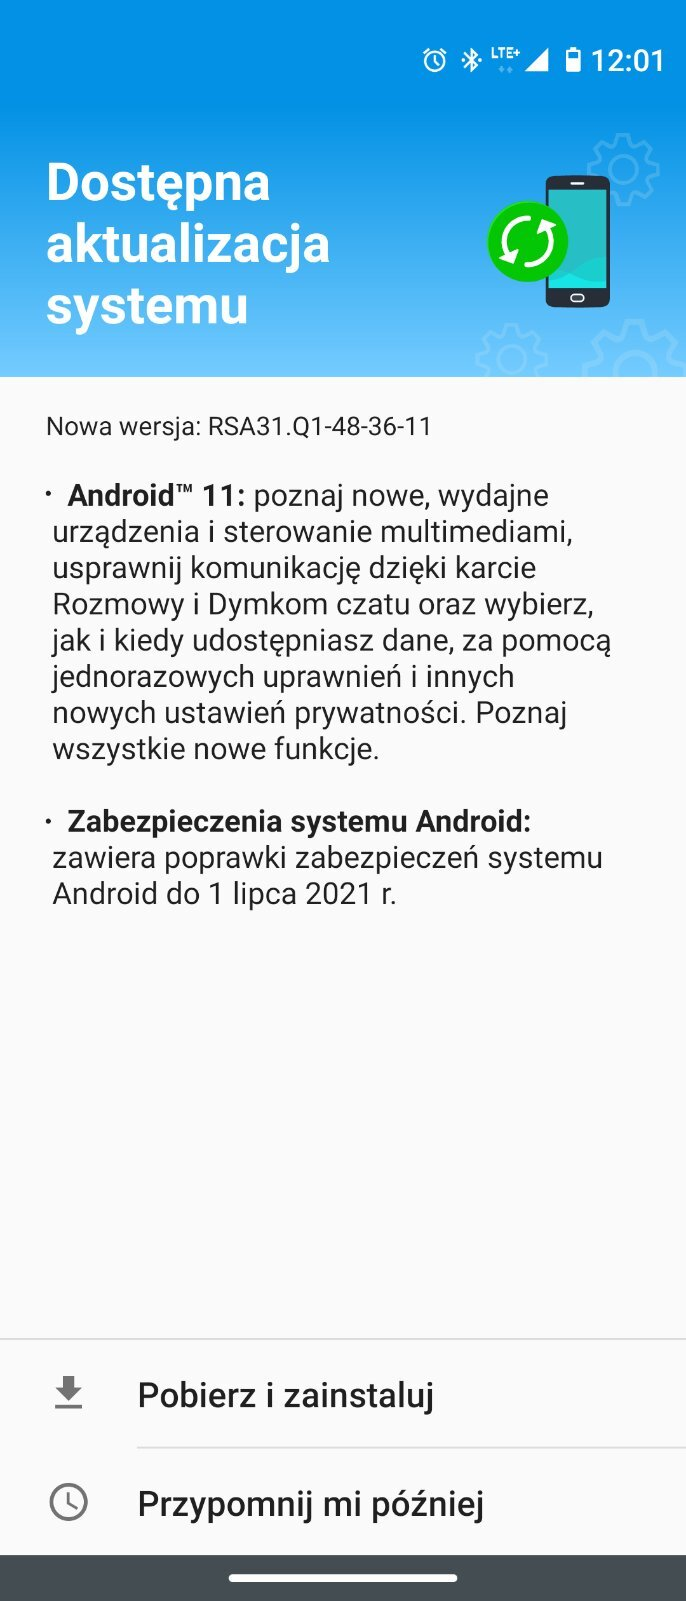 Today  - Android 11 in Poland